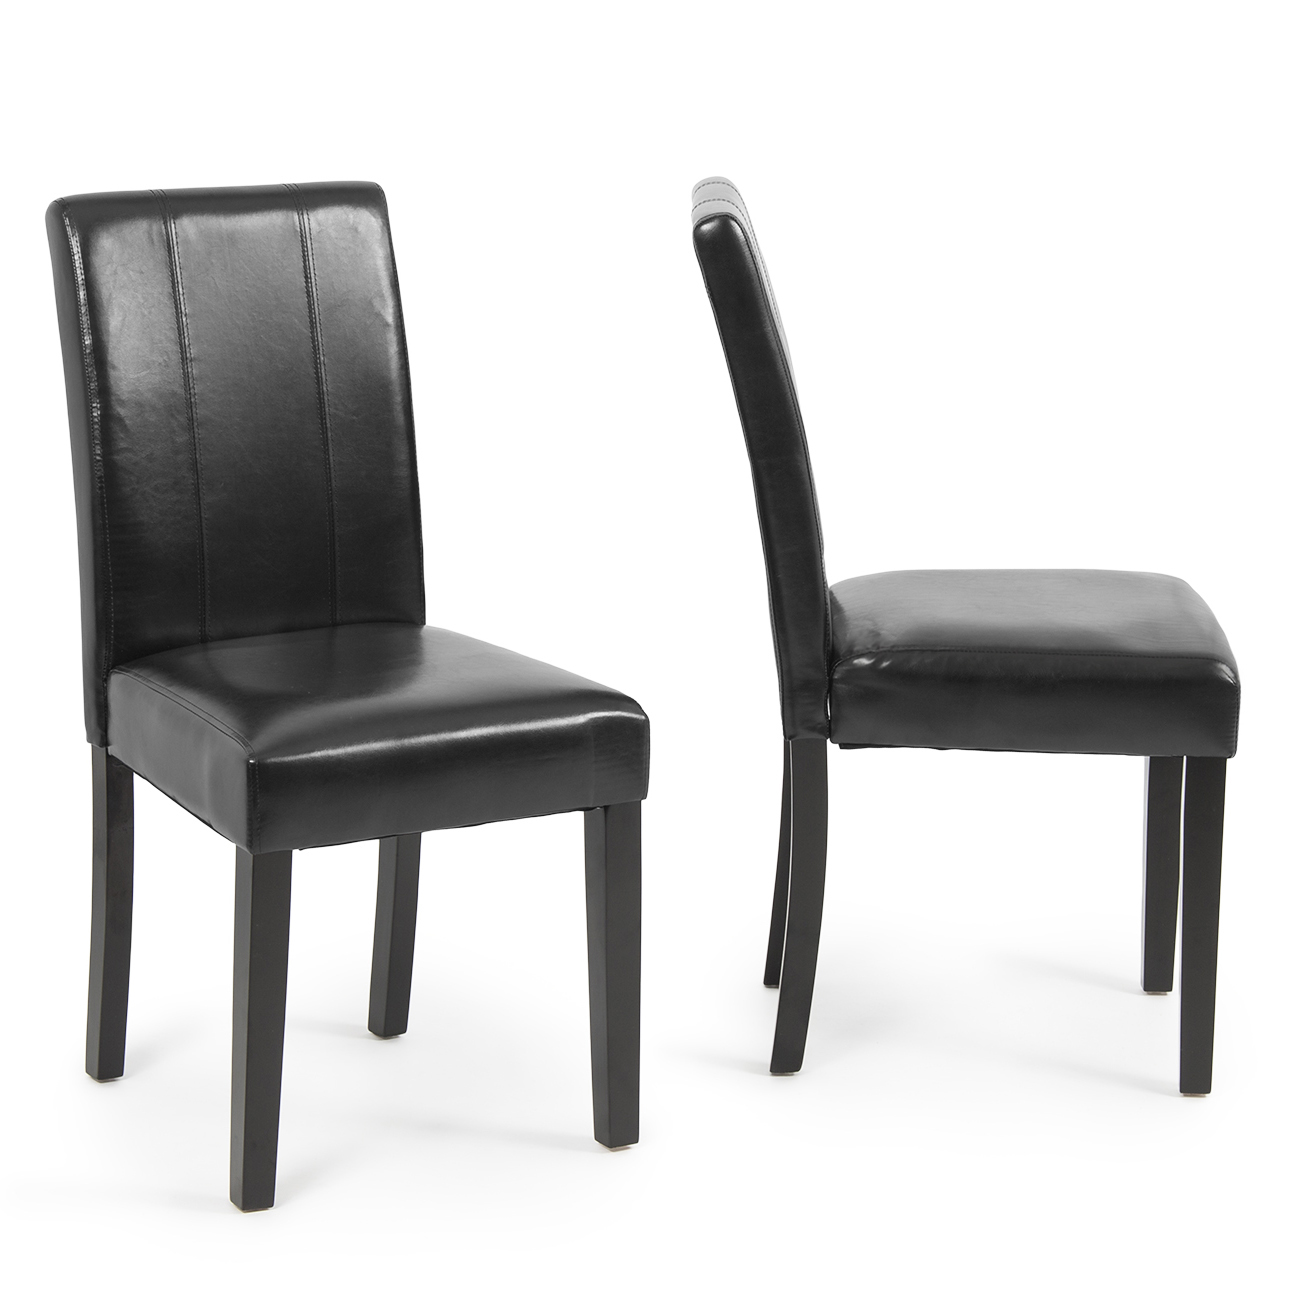 modern parsons chair leather dining living room chairs seat set of 2